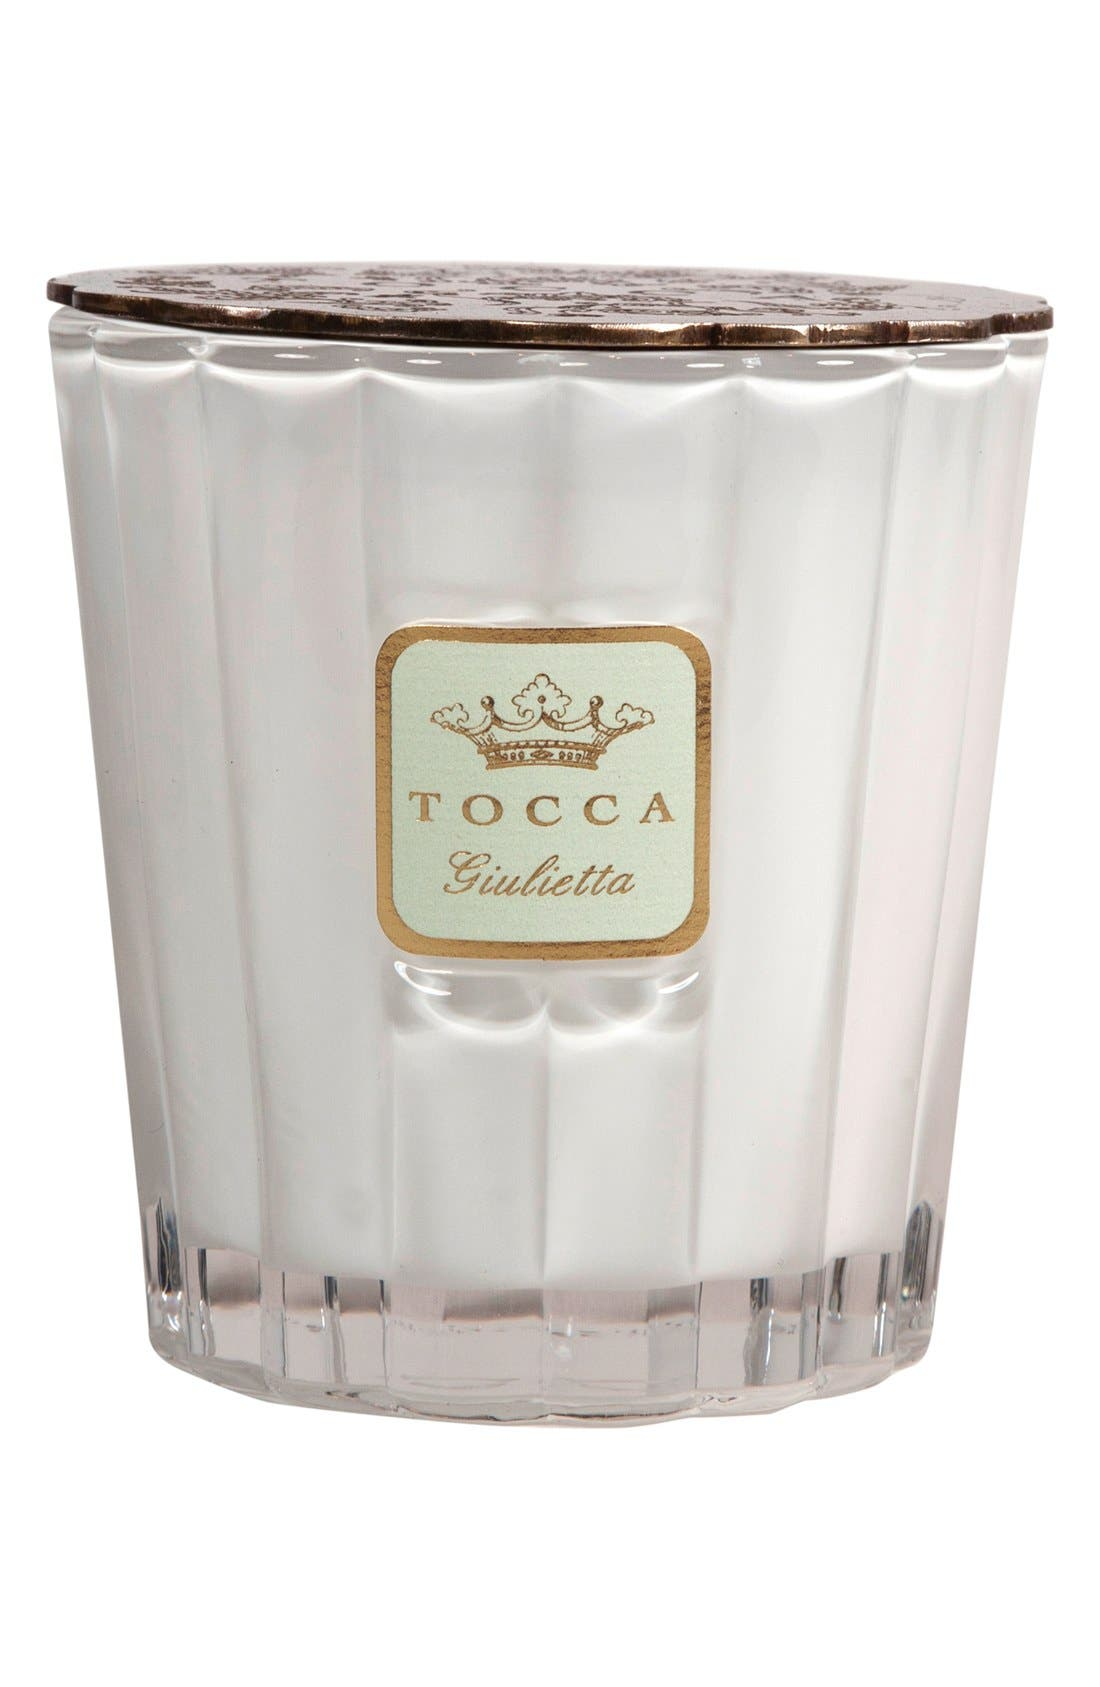 Main Image - TOCCA Candela Luxe Candle